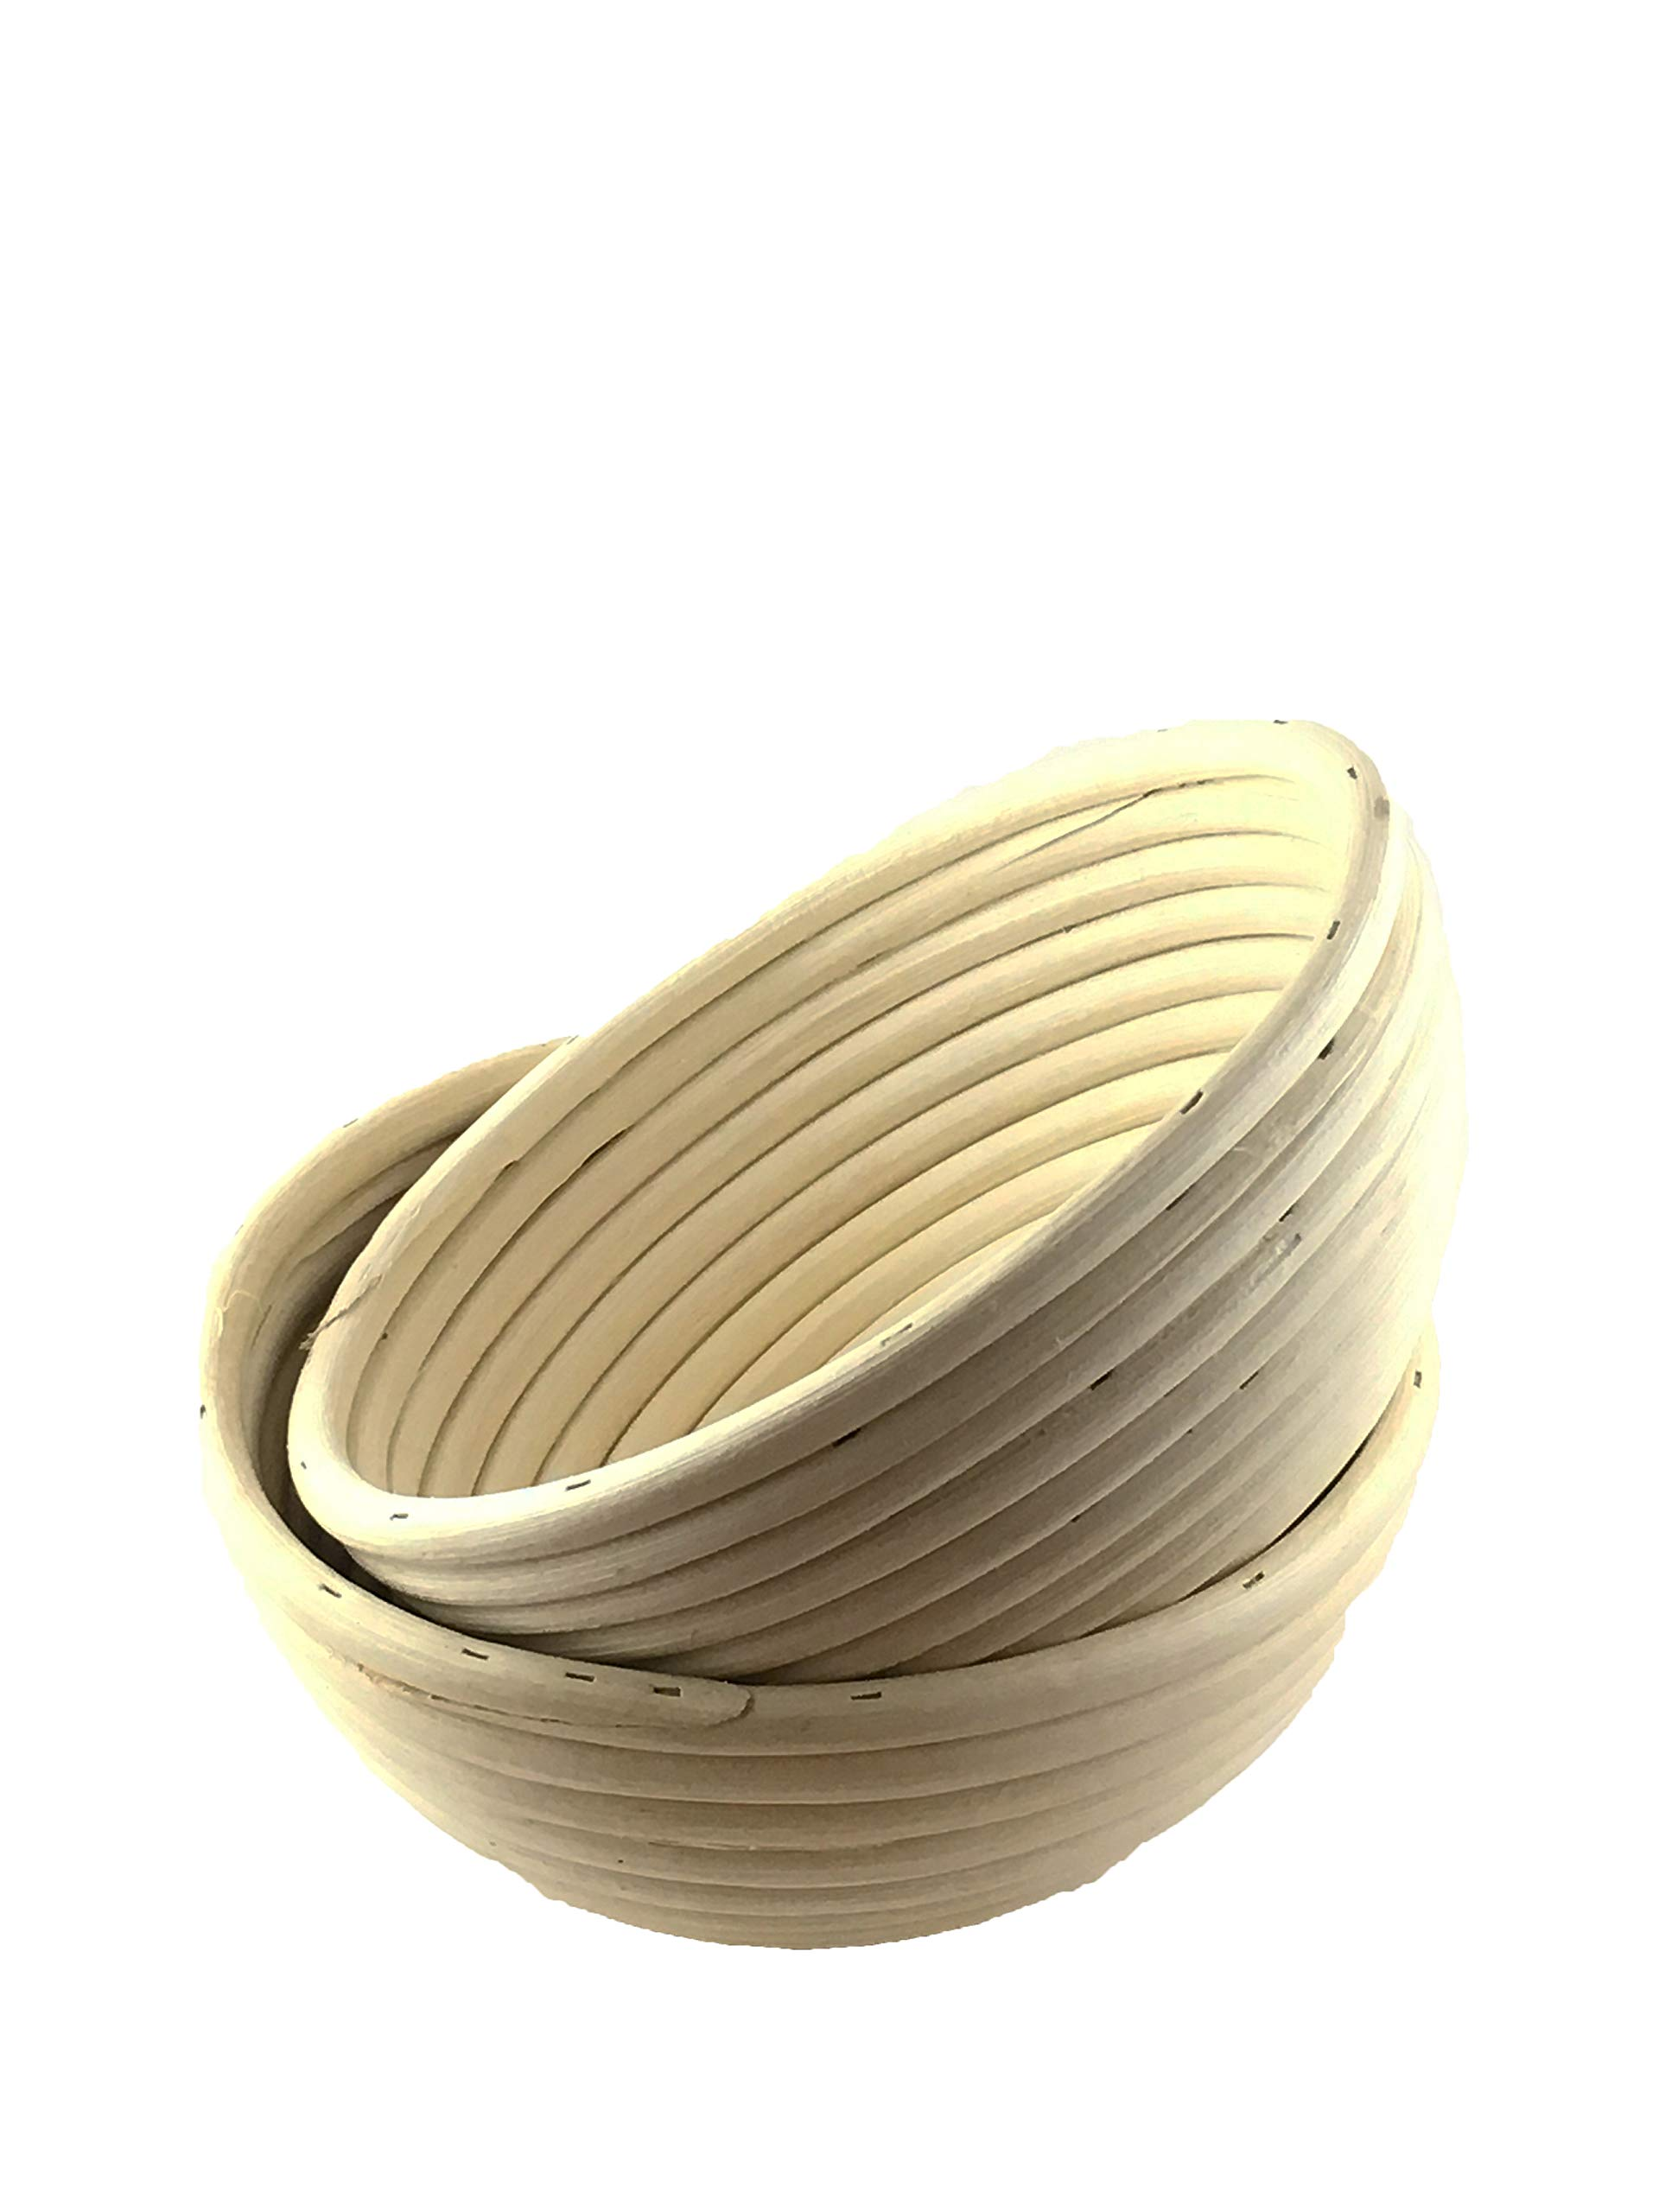 7 Inch Round Proofing Basket (Pack of 2) by Artisan Baking Co. Manufactured for professional made of rattan. Great for homemade sour dough bread (2)